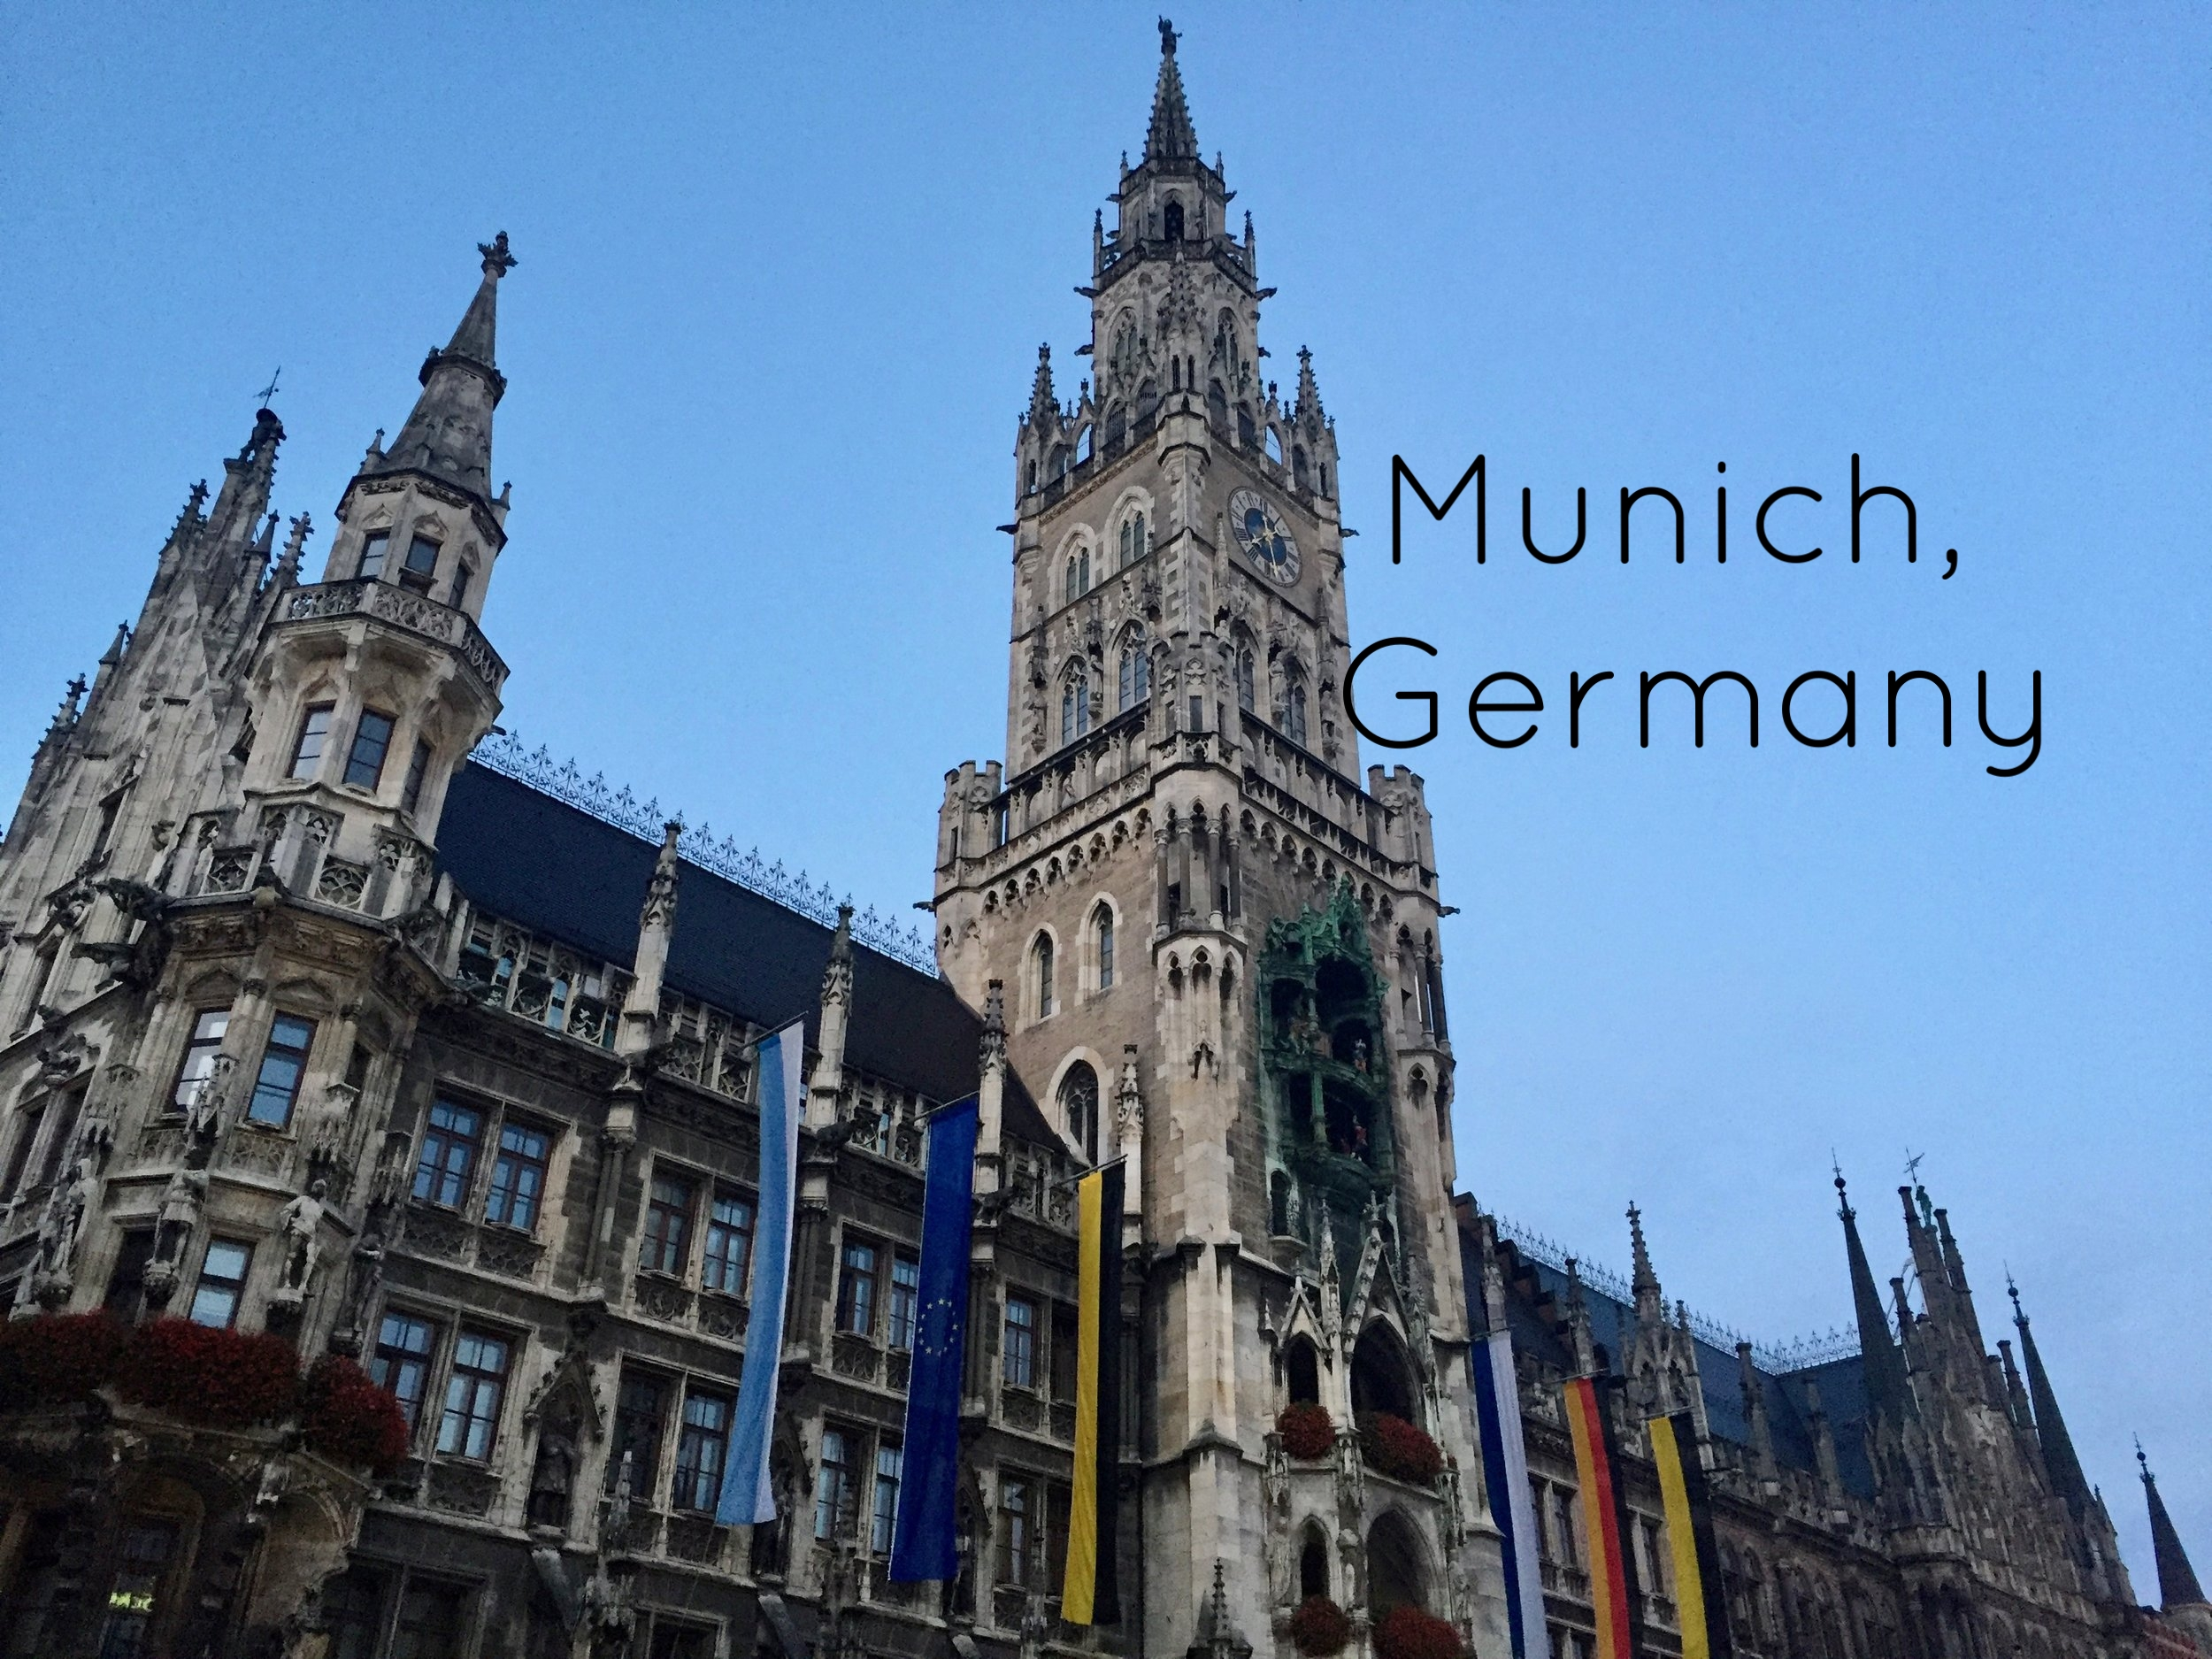 New Town Hall in the center of Marienplatz in Munich, Germany.